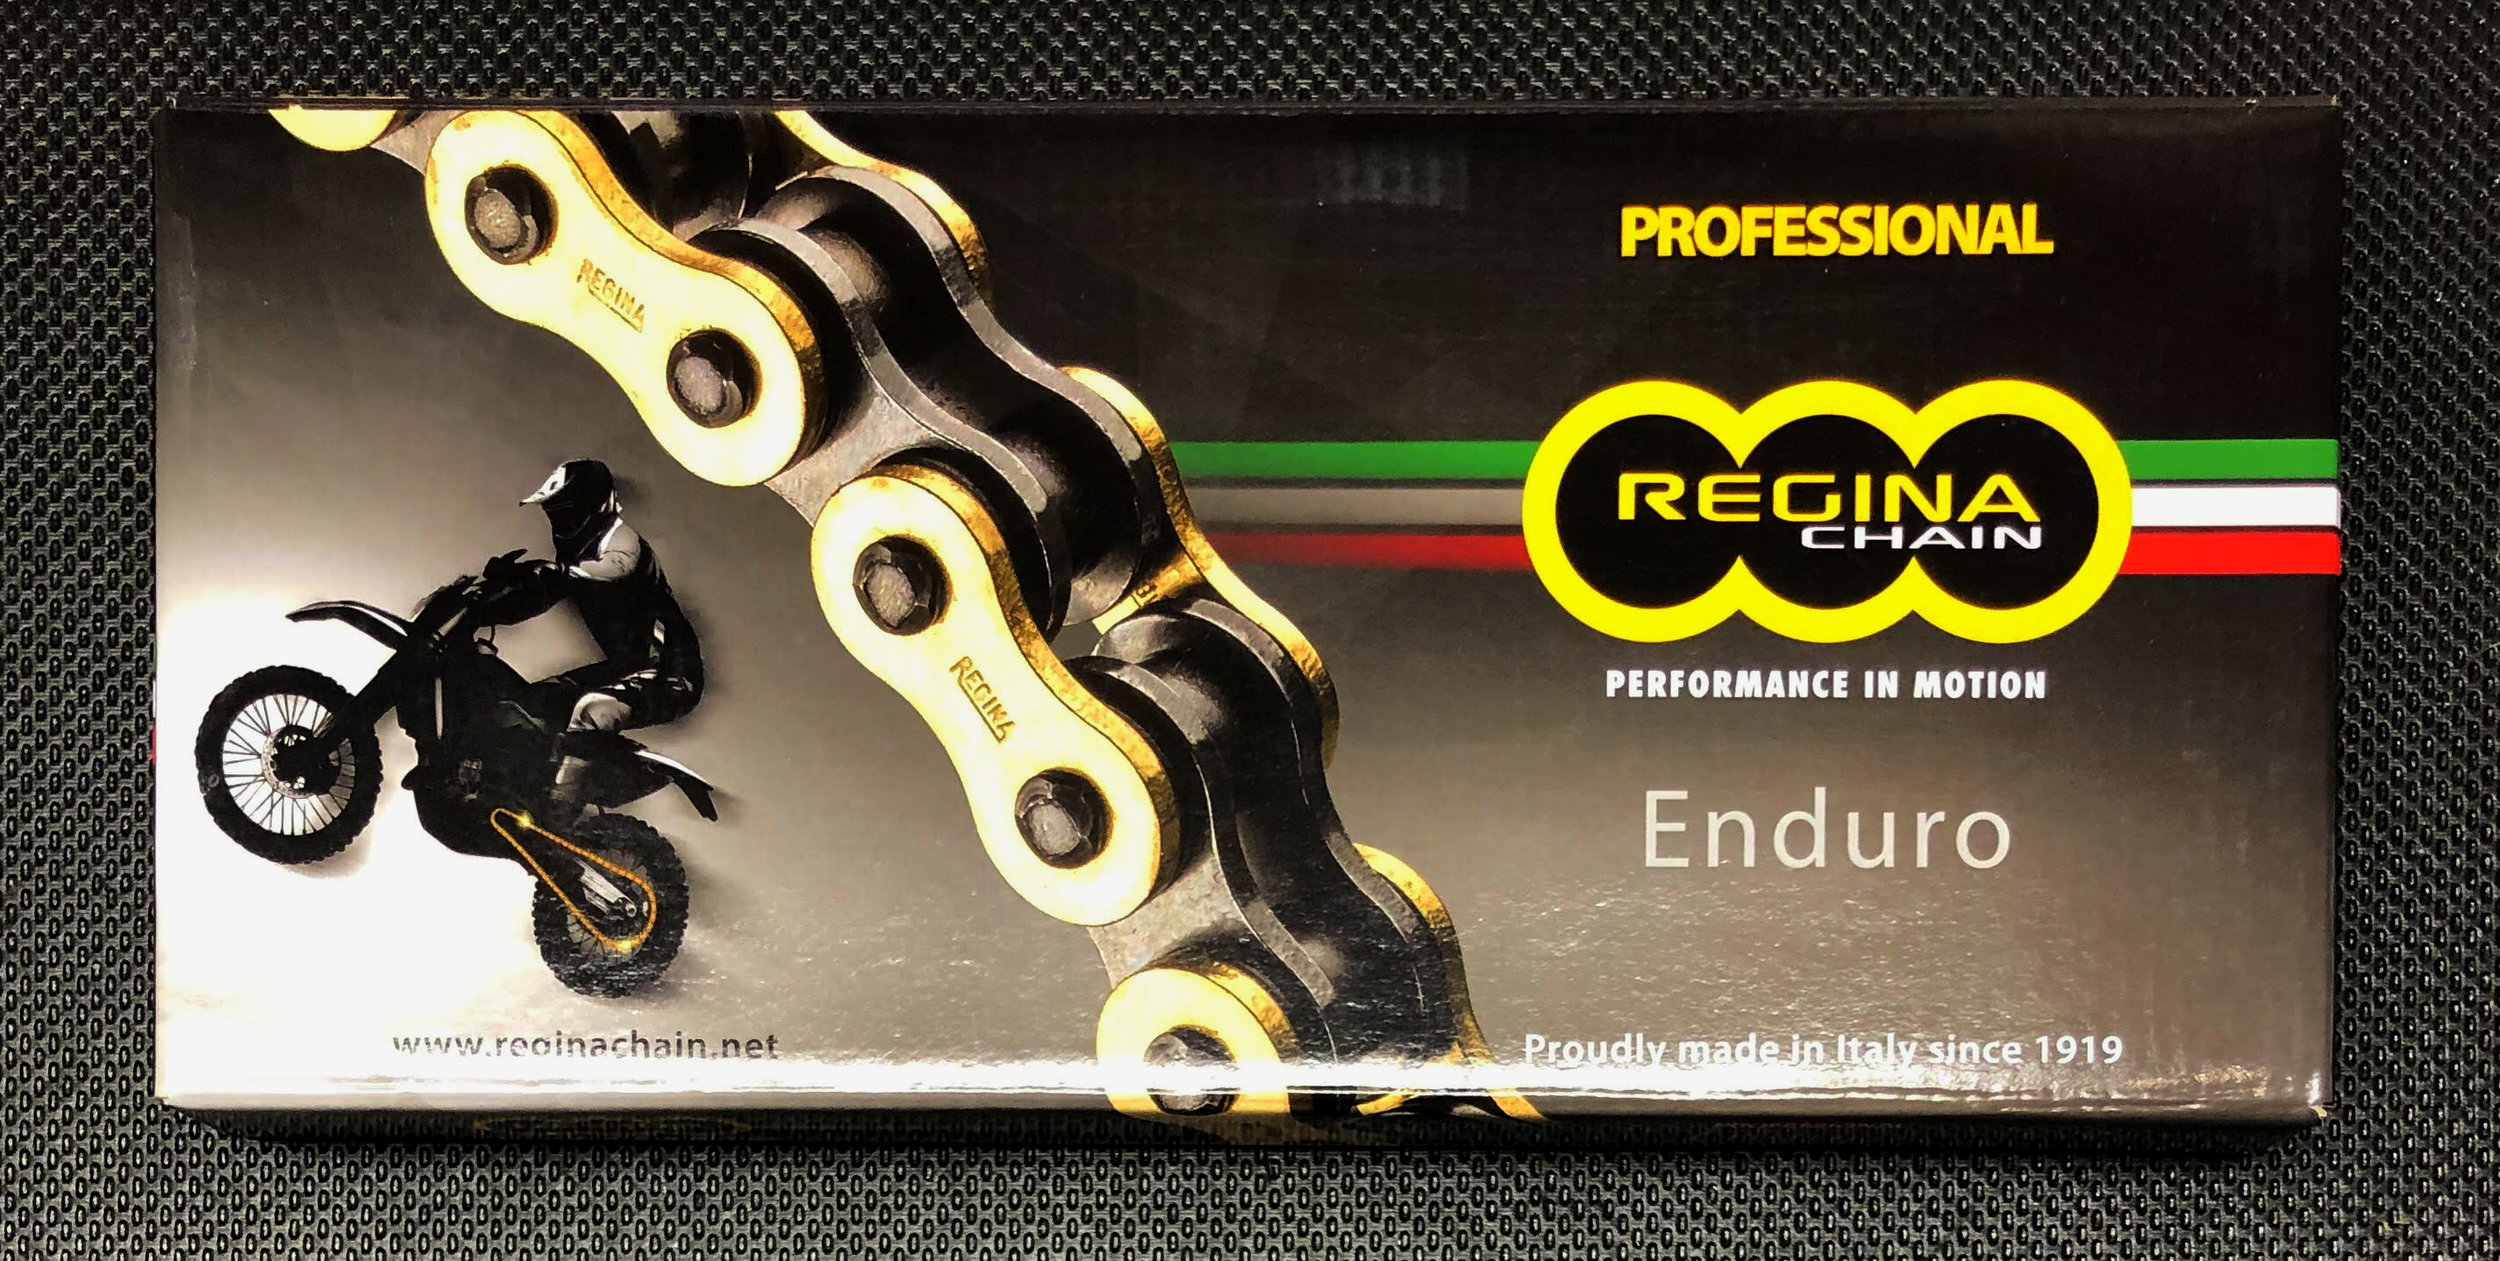 Enduro Chains - Darken offers two Regina Enduro chains, the gold 520/135 ZSE narrow chain and gold 520/135 ZRE chain. These chains dominate the endurance circuit. These Z-Ring chains can buck any climate and are reliable through miles of natural terrain including woods and river crossings.